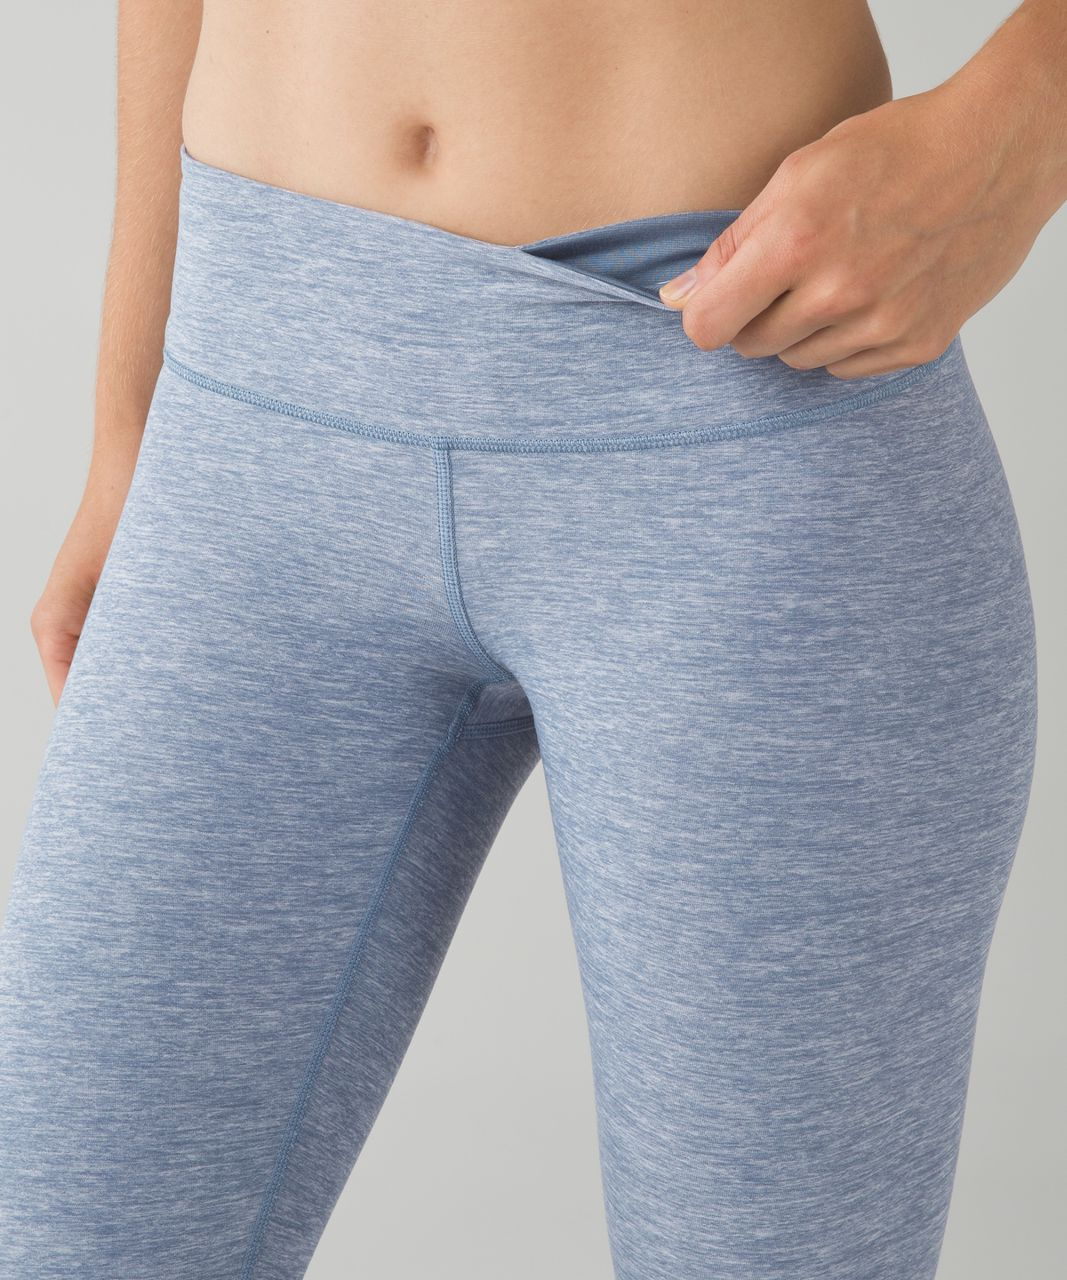 Lululemon Wunder Under Pant - Heathered Blue Denim